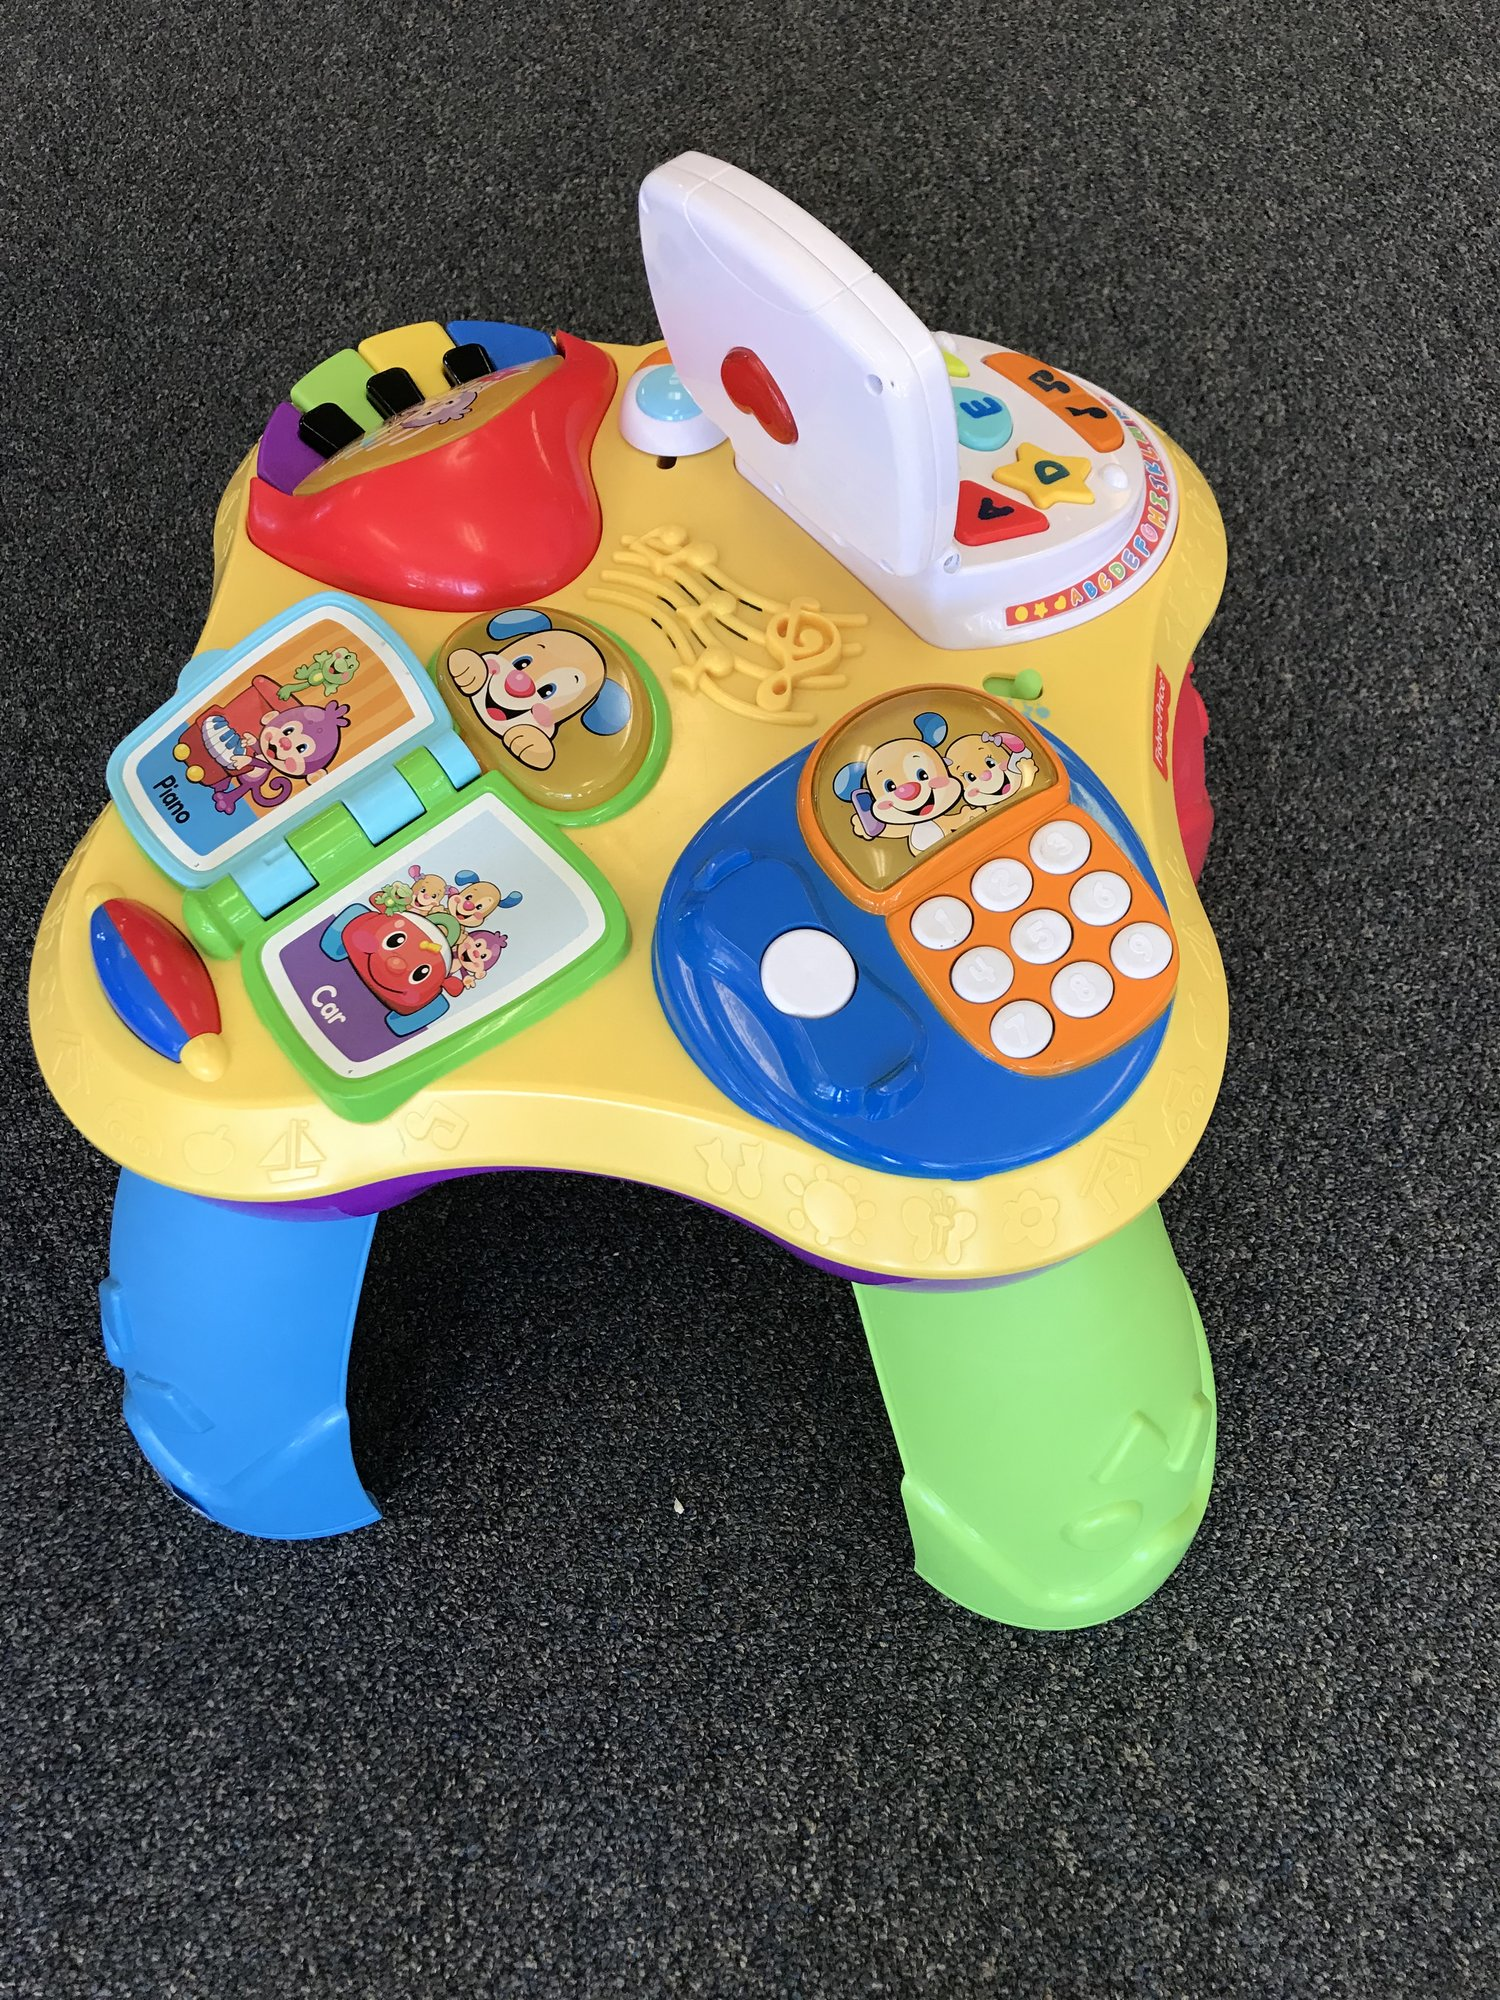 Fisher Price Activity Table w/sounds.  A must have for those 9 mo-18-months in age!  Great condition and super clean! NO SHIPPING, in store pick up only